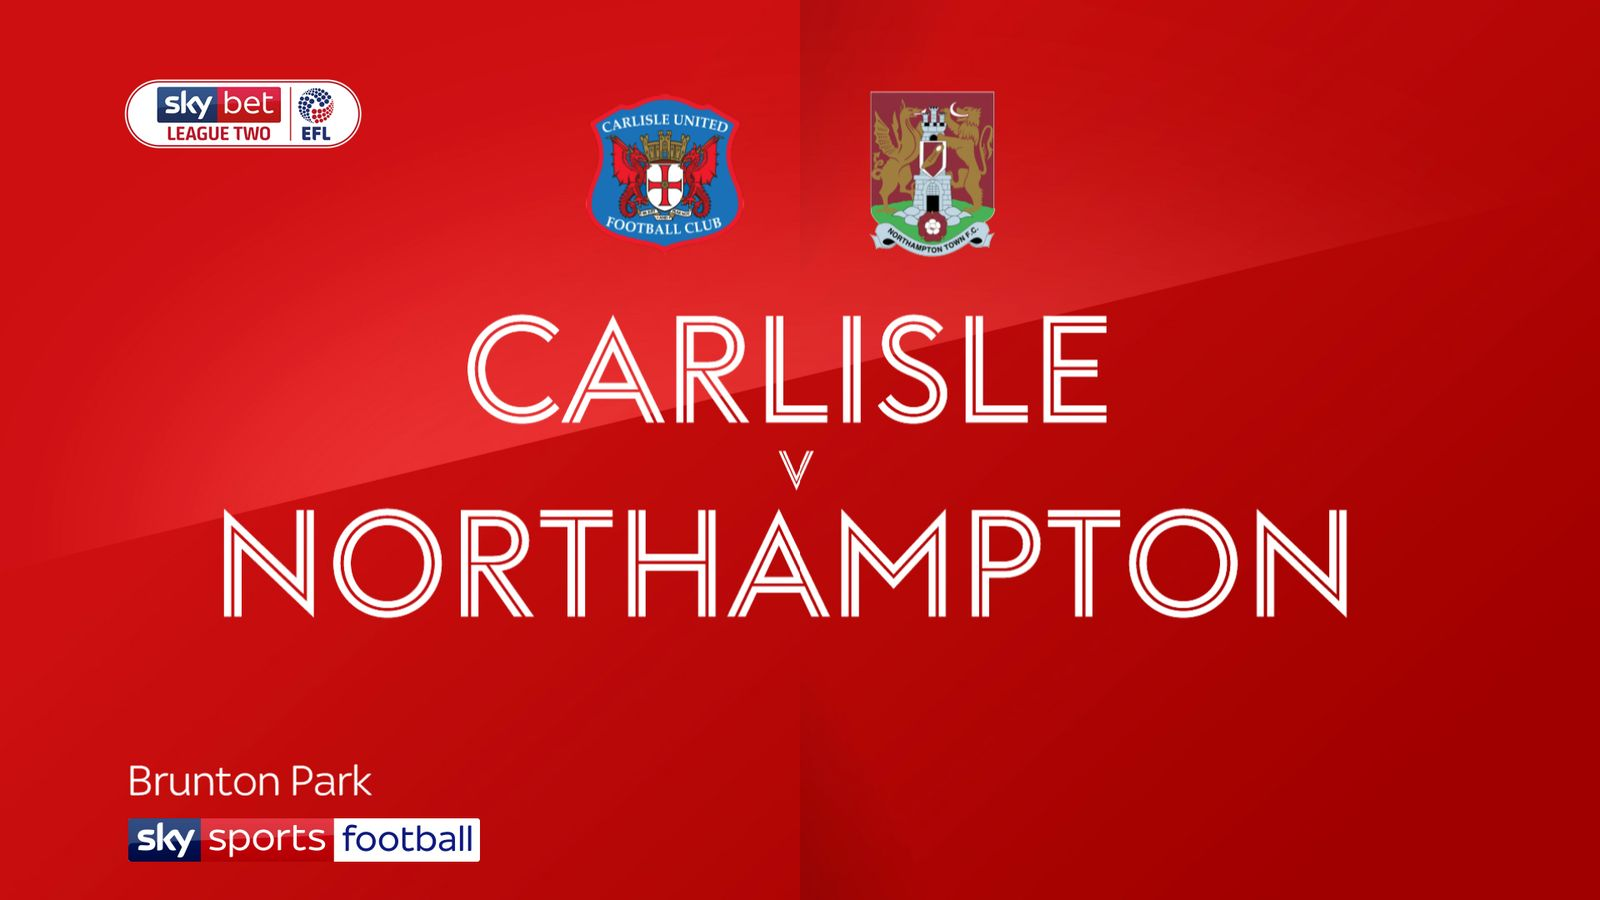 Carlisle 0-2 Northampton: Keith Curle enjoys winning return